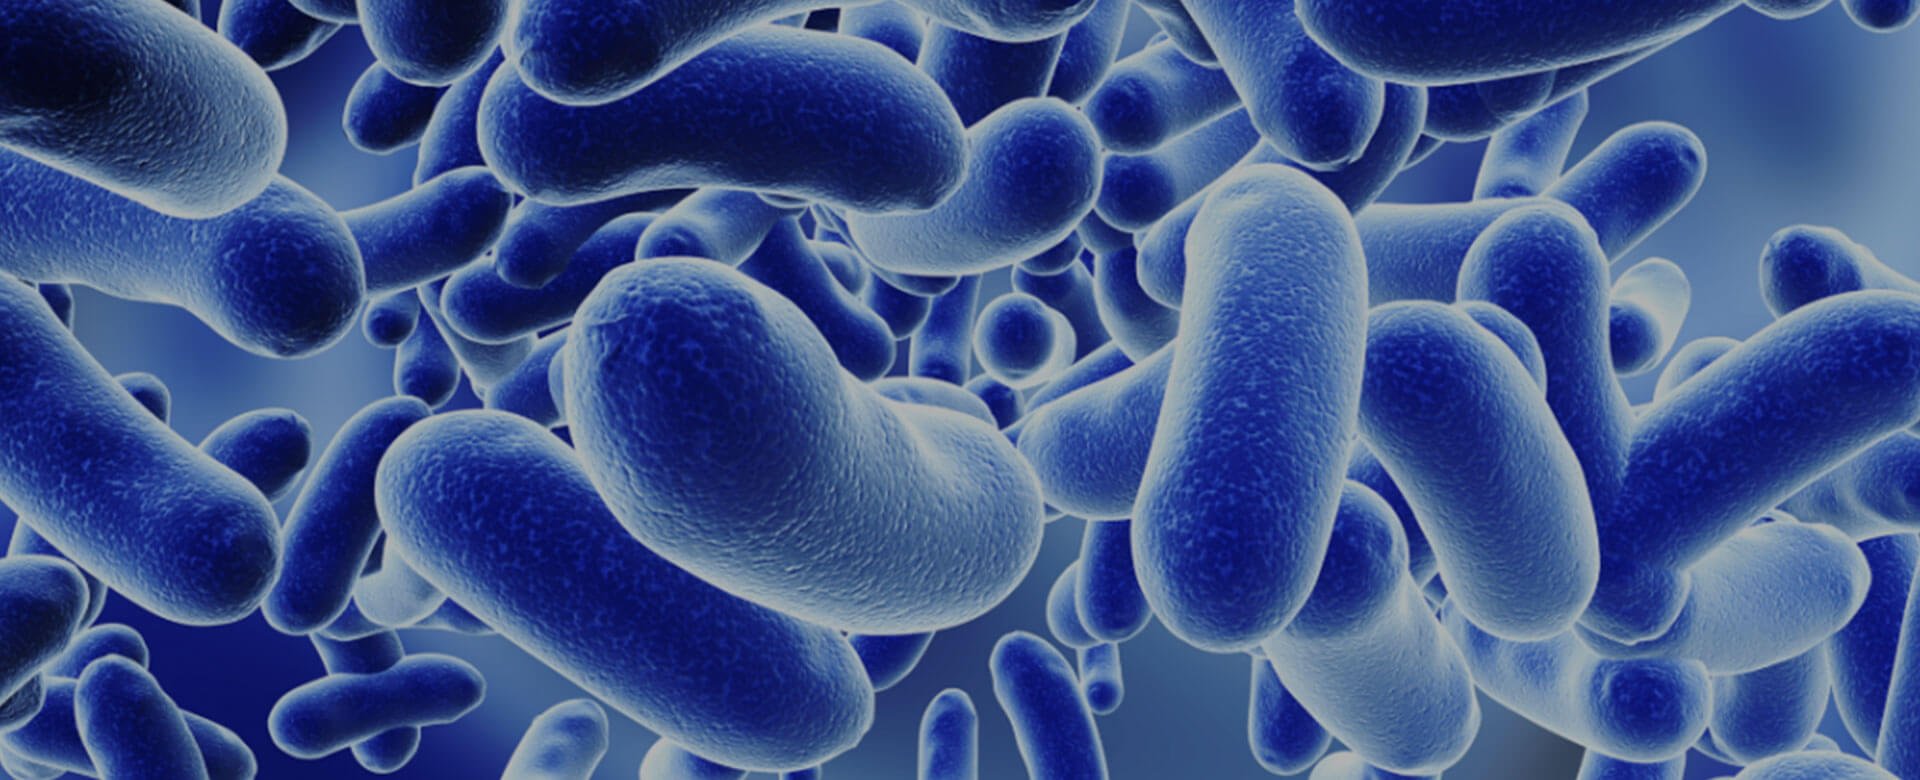 Toward a healthy immune system: the role of the microbiome